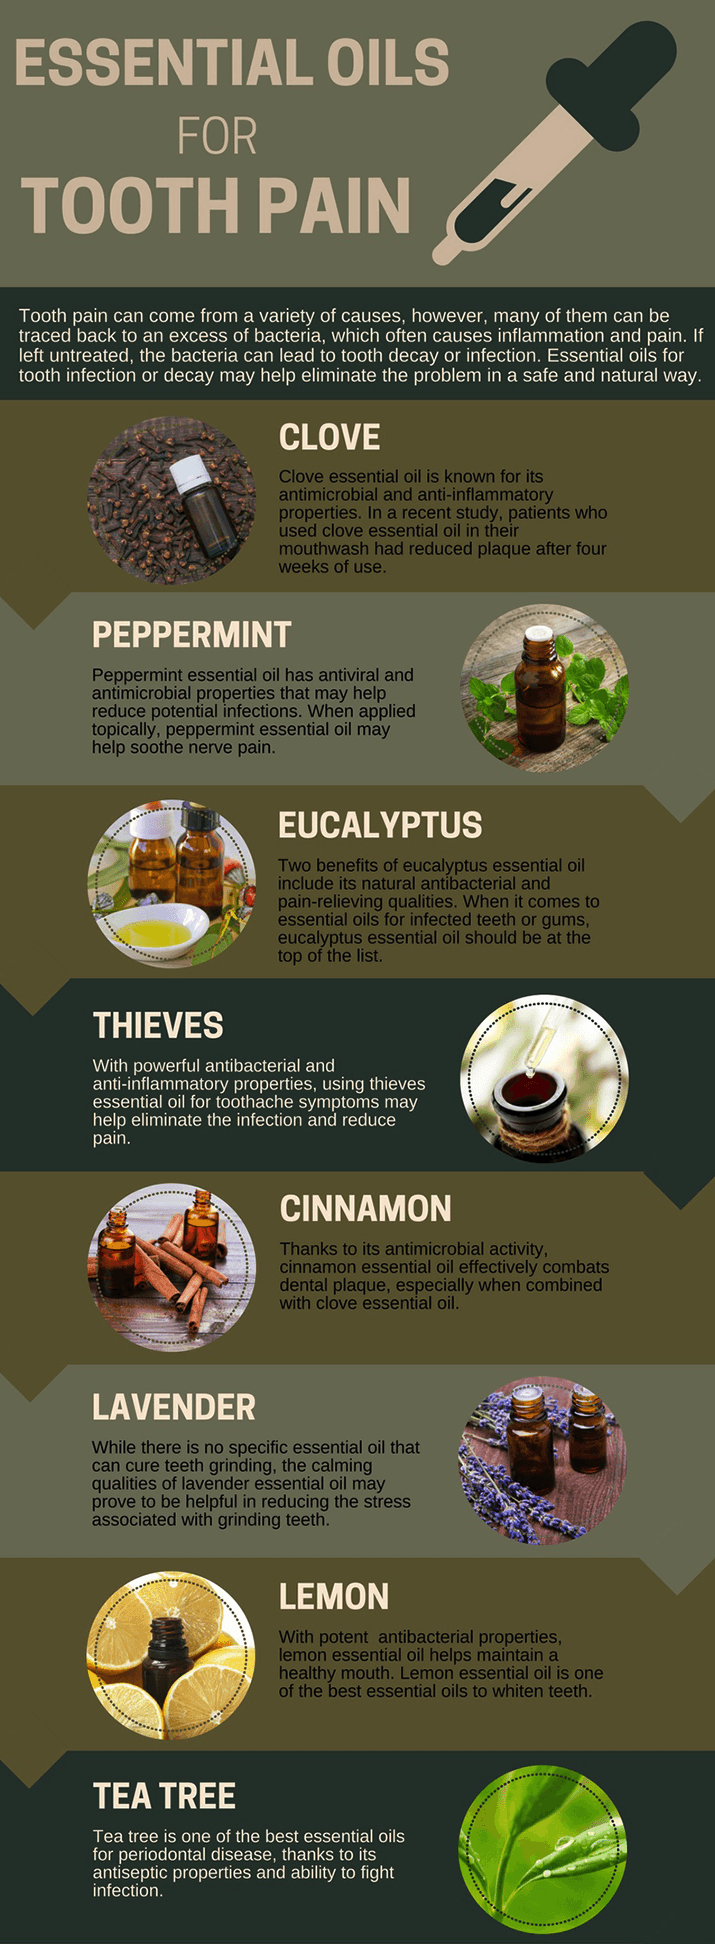 Best-Essential Oils for Toothaches